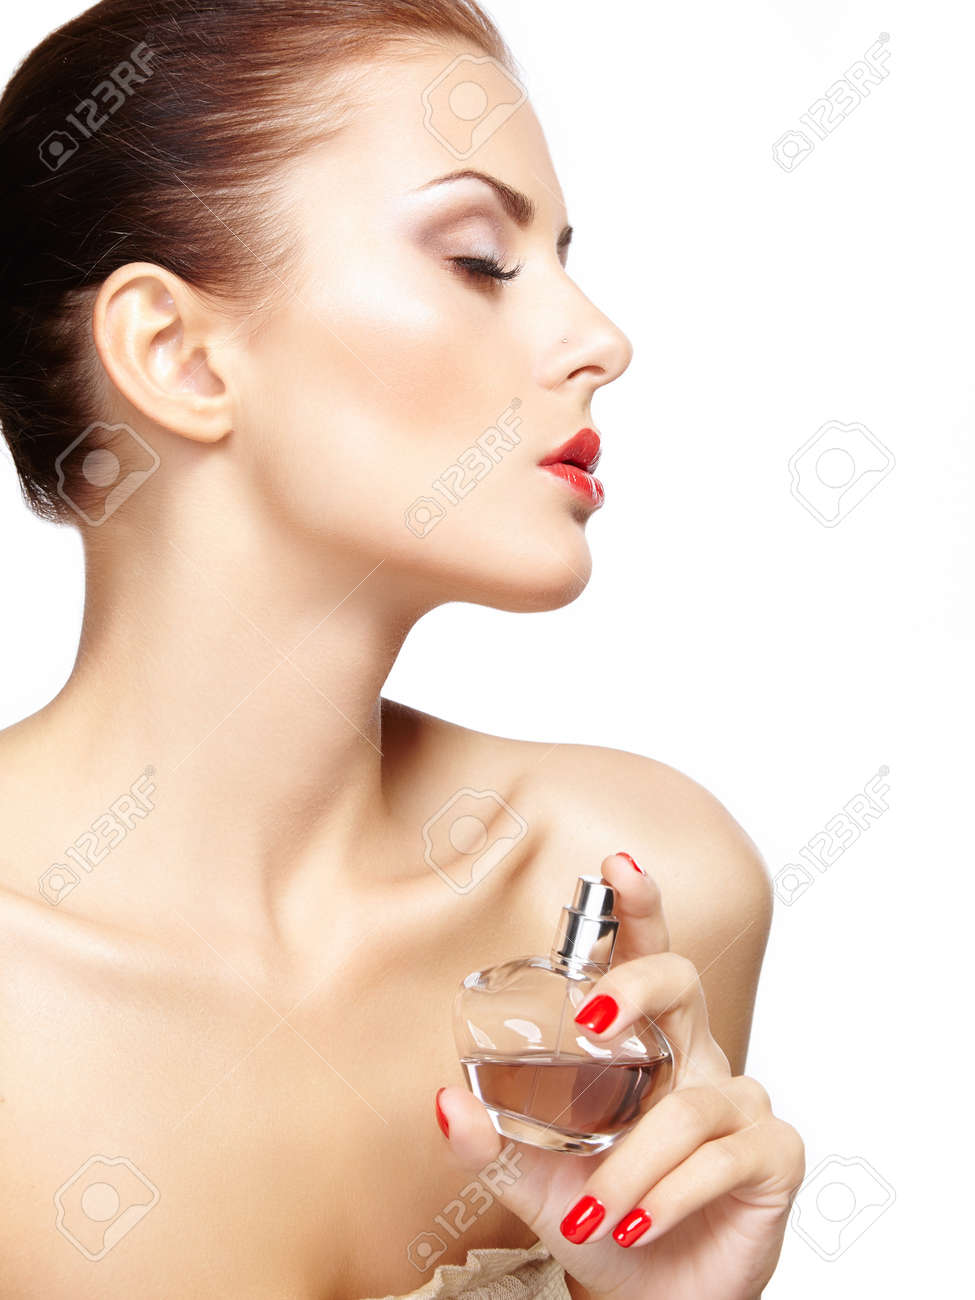 Young woman applying perfume on herself isolated on white background. Fashion photo Stock Photo - 22108187